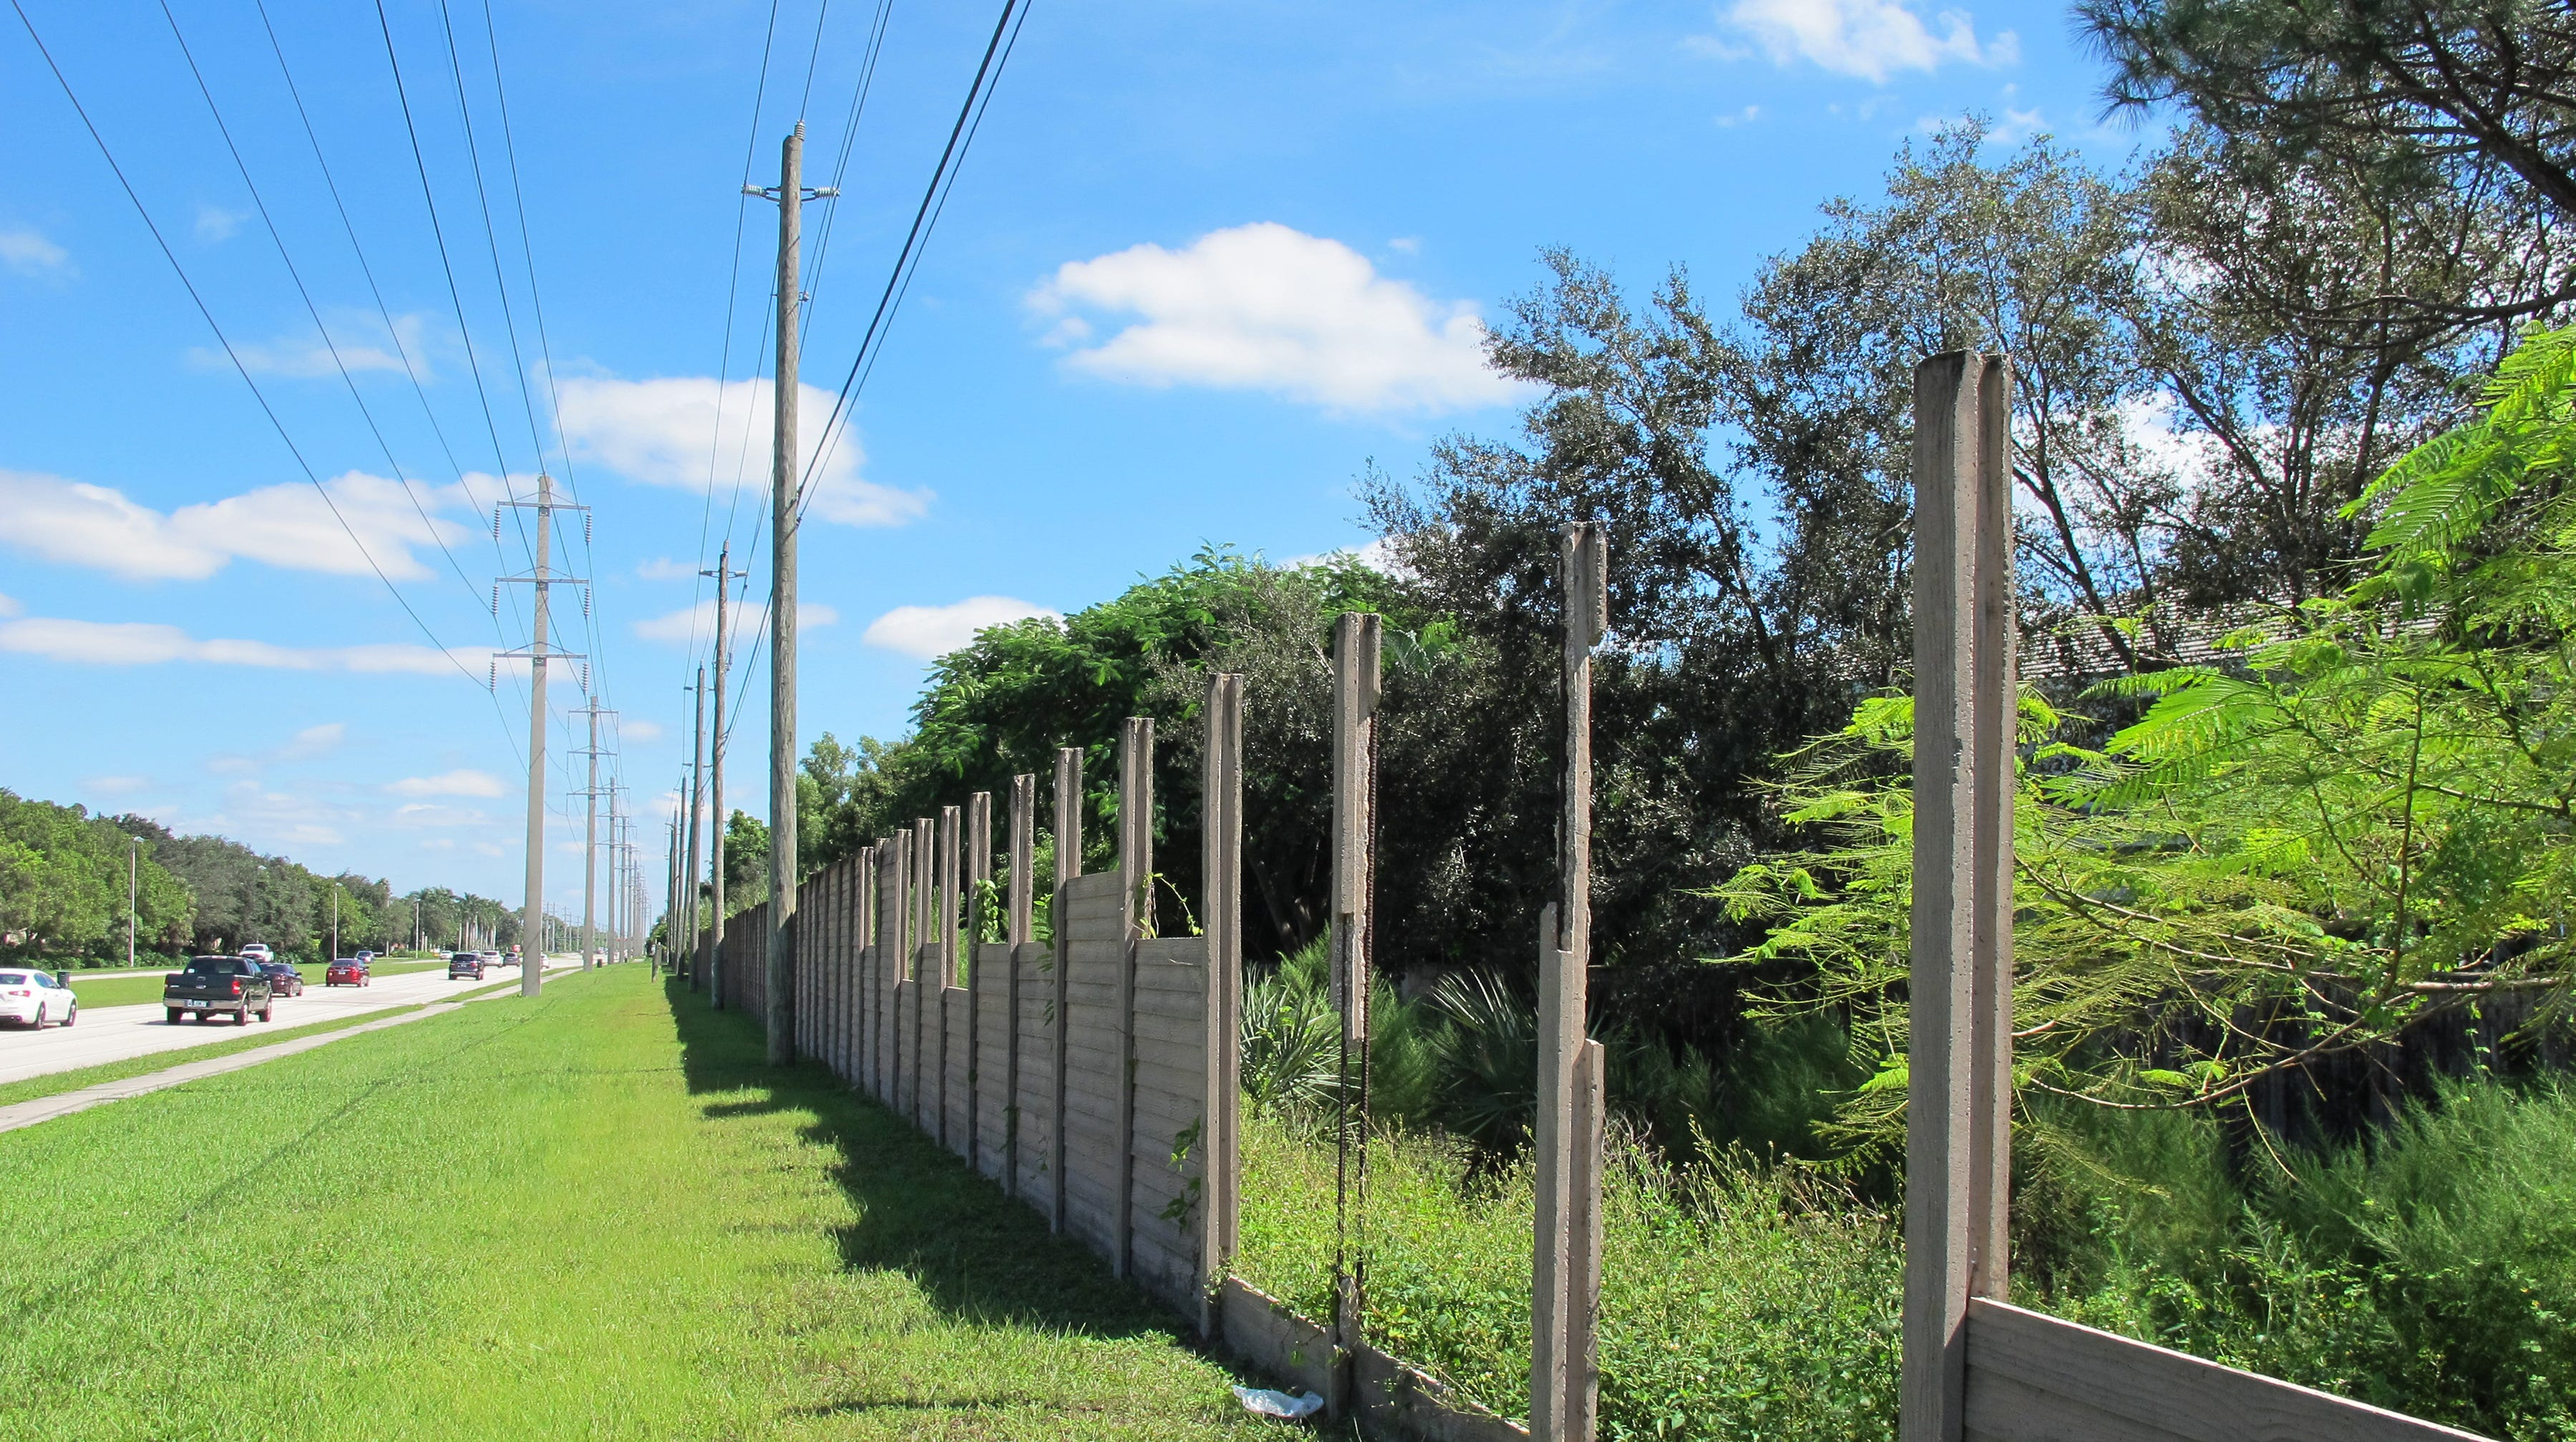 Work will start this month to replace the  concrete wall damaged by Hurricane Irma along the south side of Vanderbilt Beach Road in North Naples.